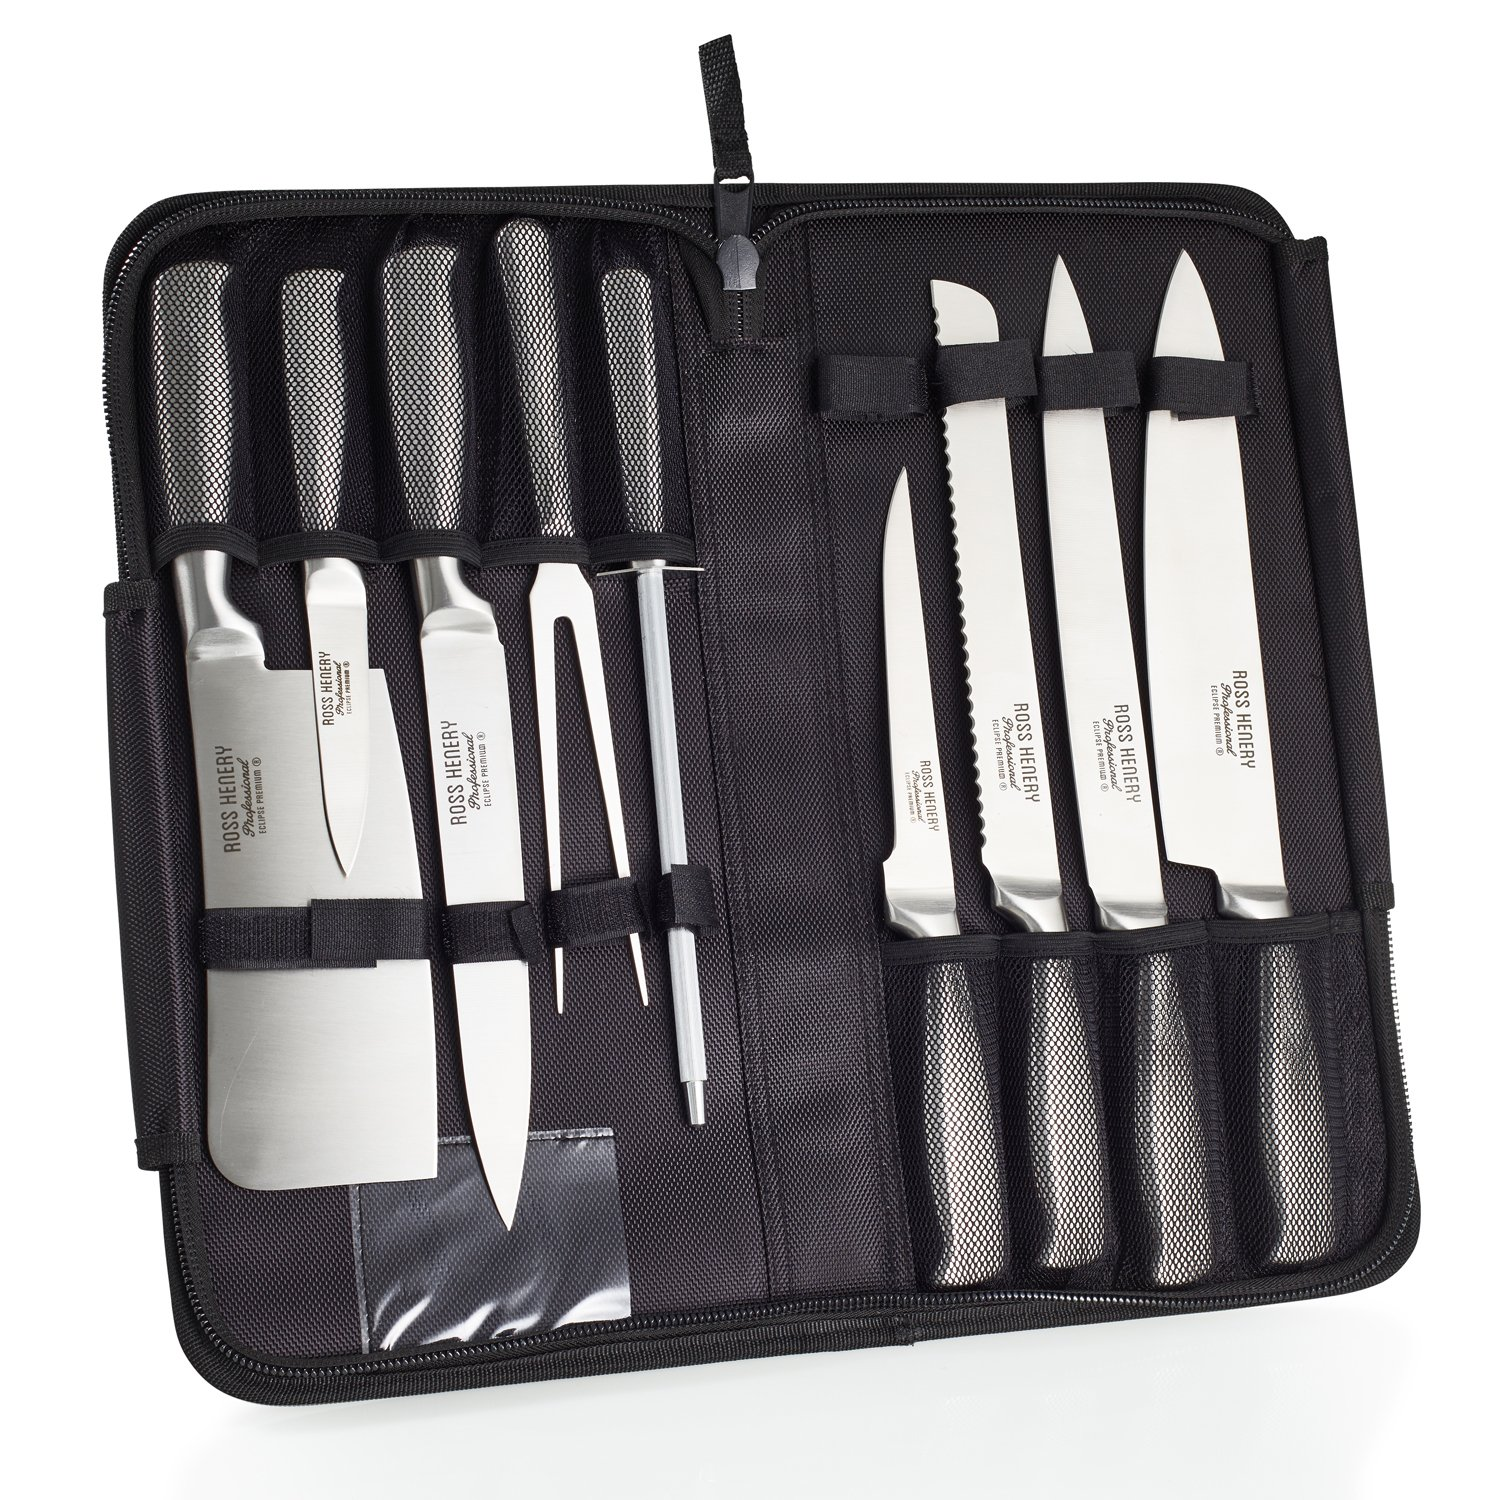 Ross Henery Professional Eclipse Premium stainless Steel 9 piece chefs knife set in carry case by  Ross Henery Professional (Image #2)